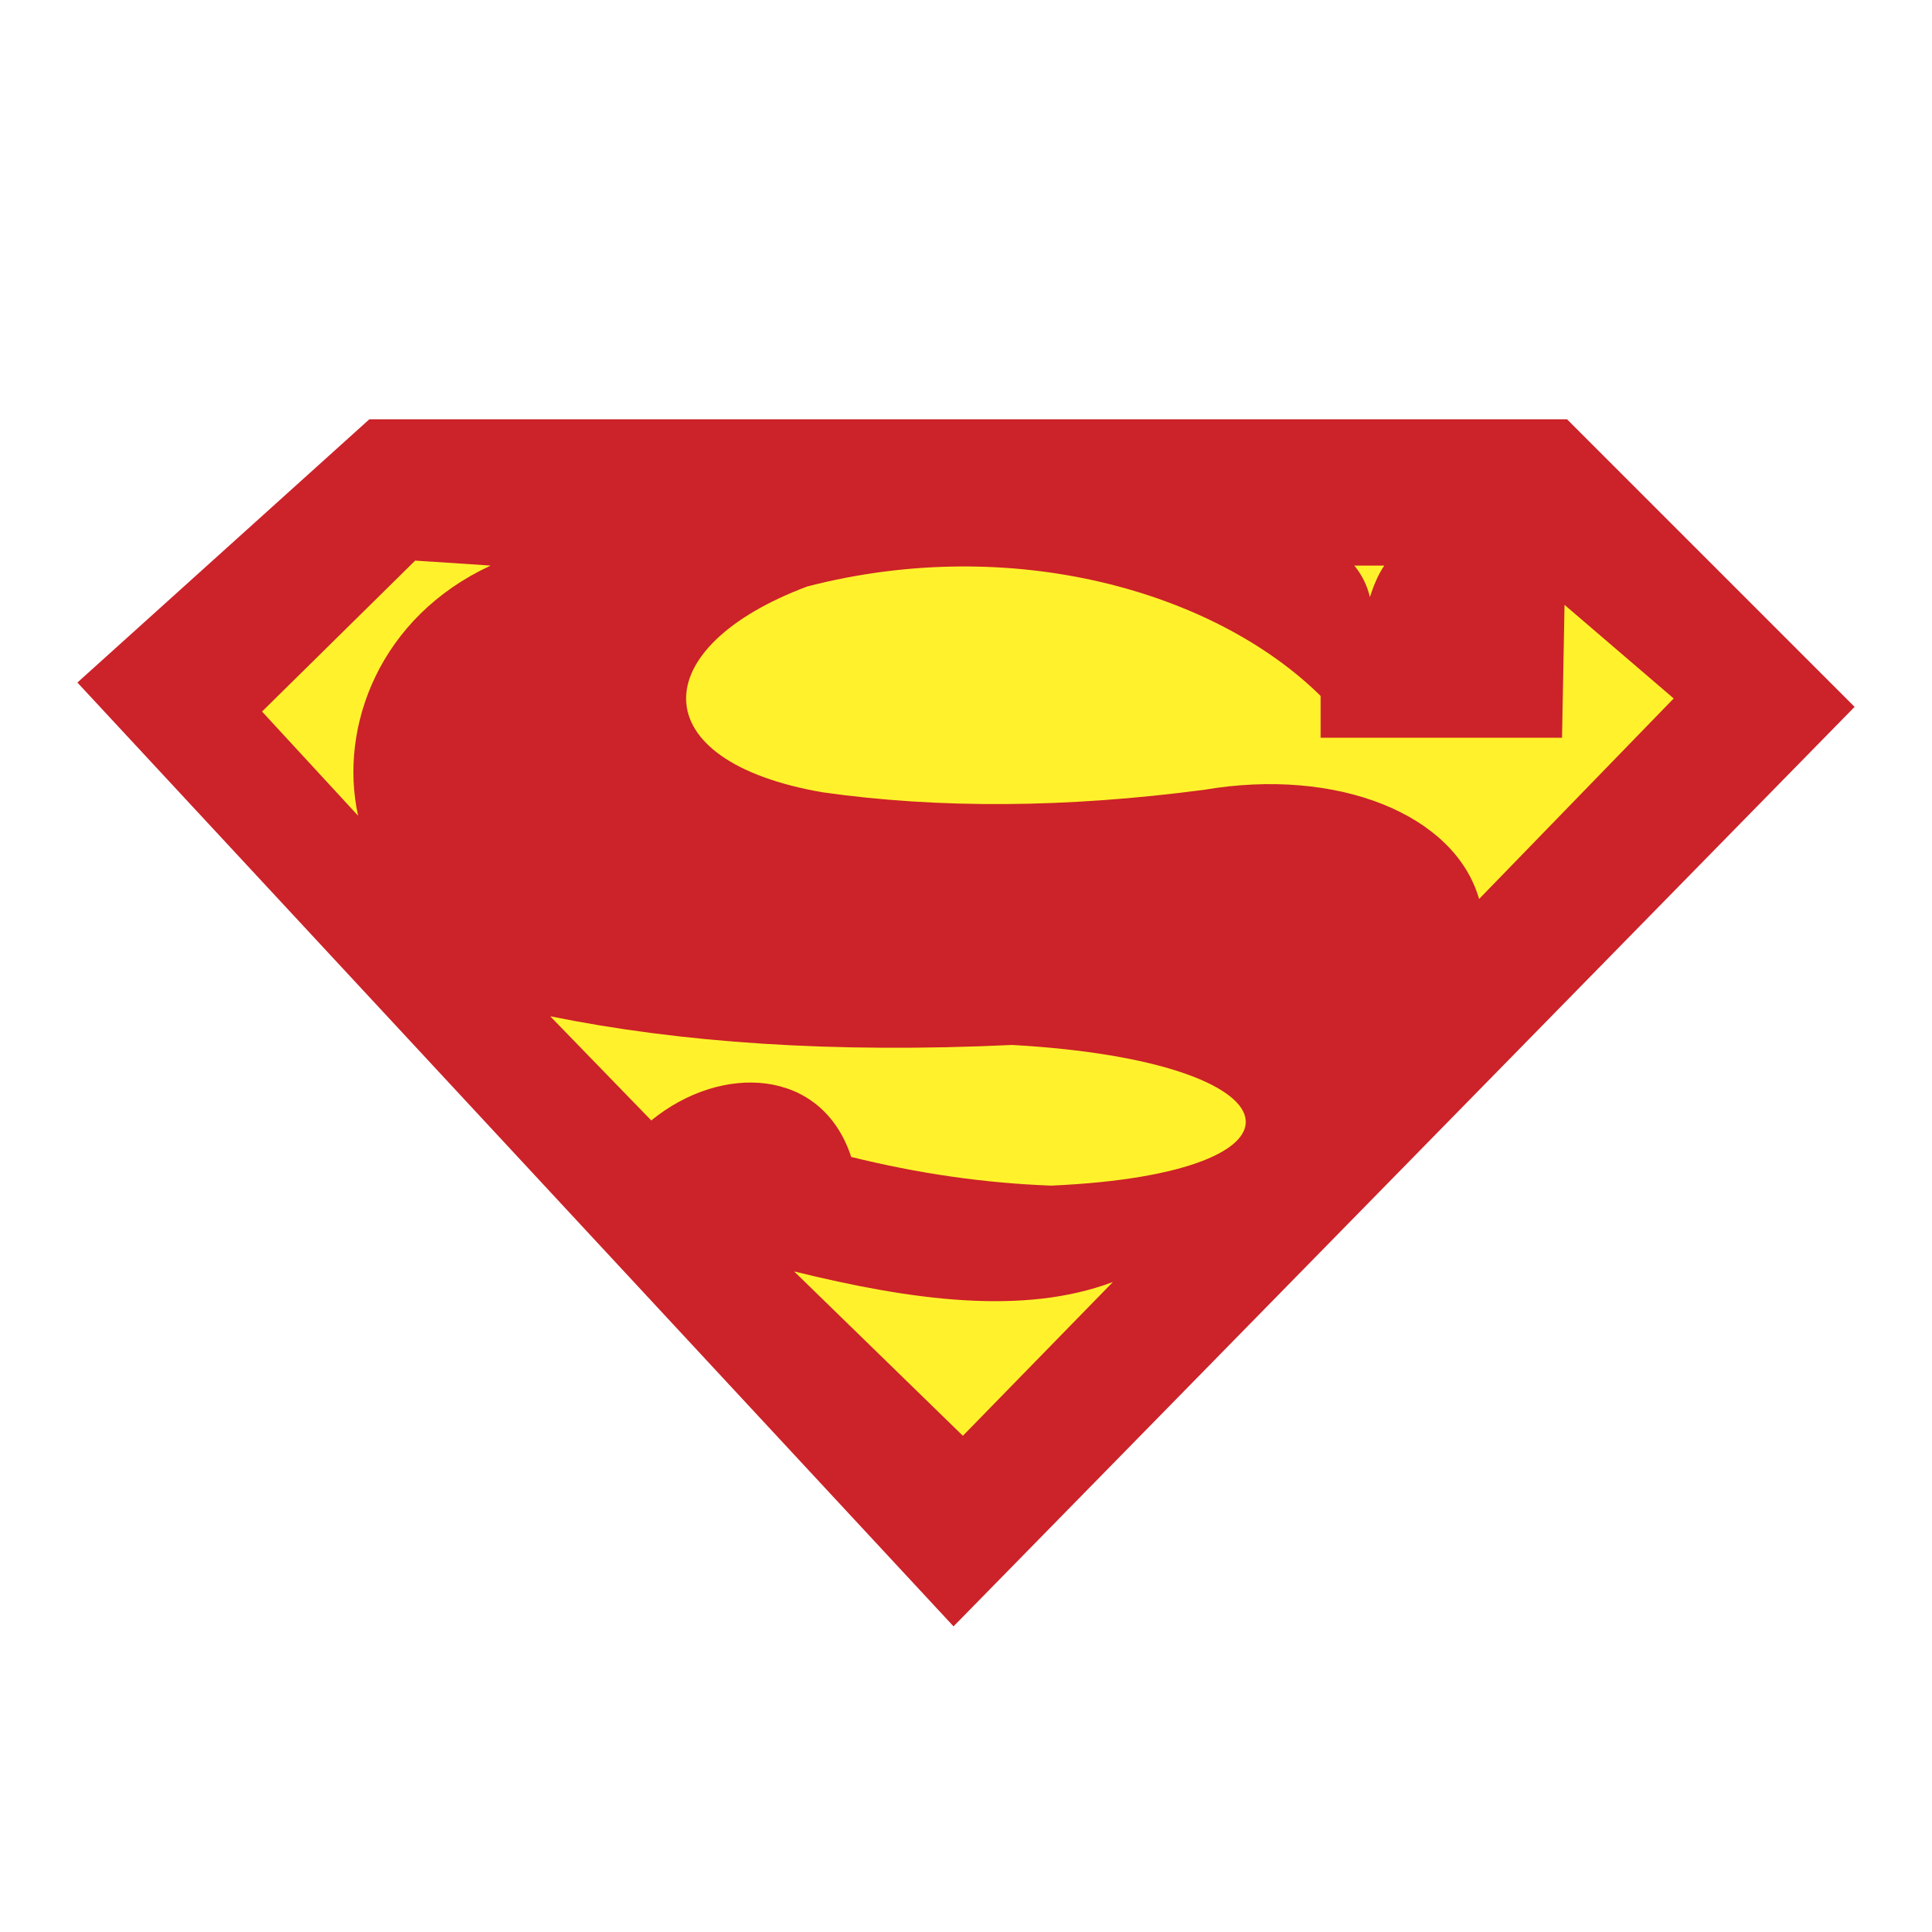 superman logo png transparent svg vector freebie supply rh freebiesupply com superman logo png file superman logo png file